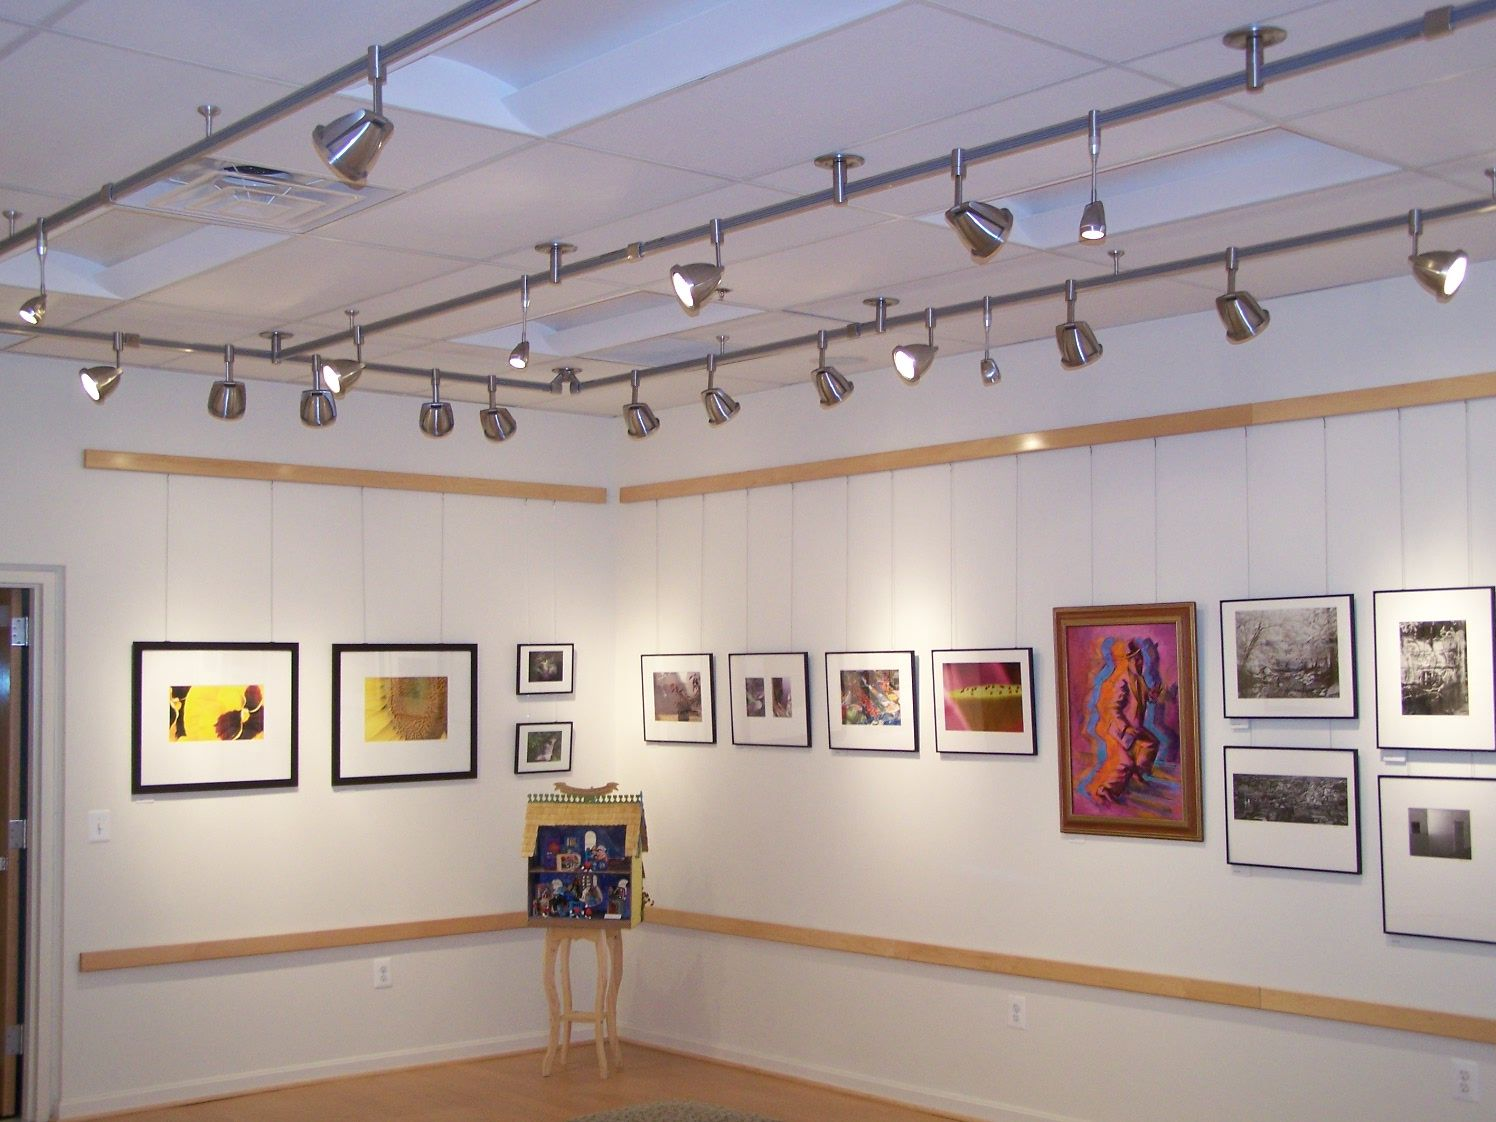 Why Led Track Lighting Is Suitable For Museum And Art Gallery